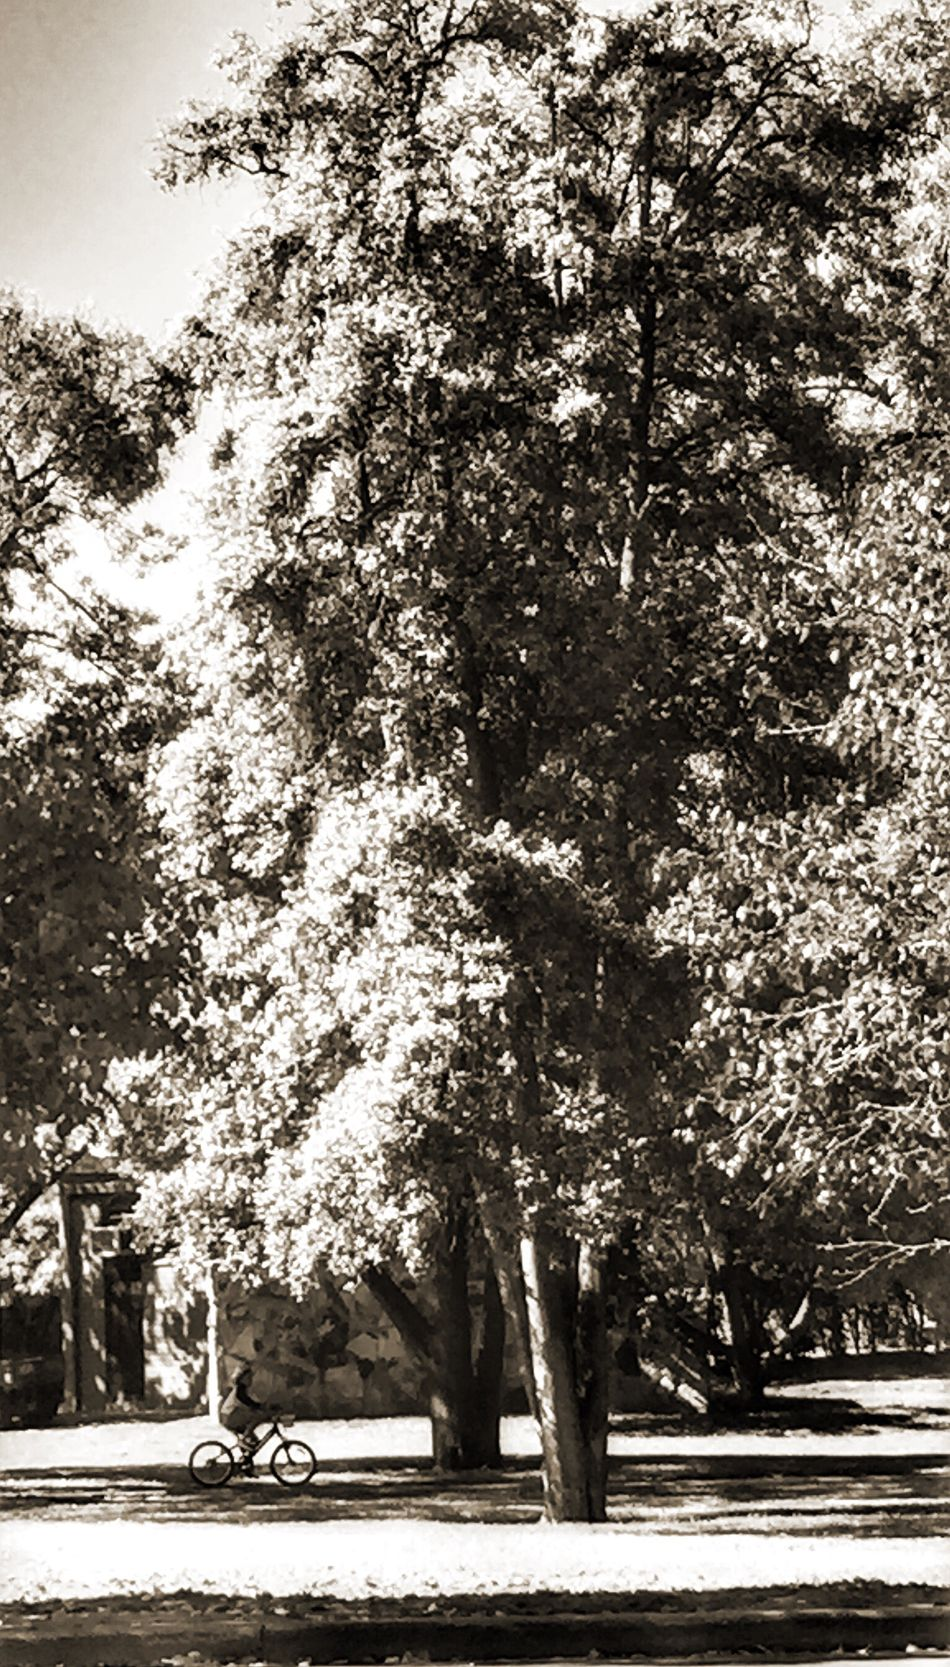 Check This Out Hanging Out Taking Photos People Watching Kids Having Fun Cycling in the Park BW Collection EyeEm Best Shots - Black + White Showcase April BW_photography Parks Tree Great Outdoors Nature Nature On Your Doorstep